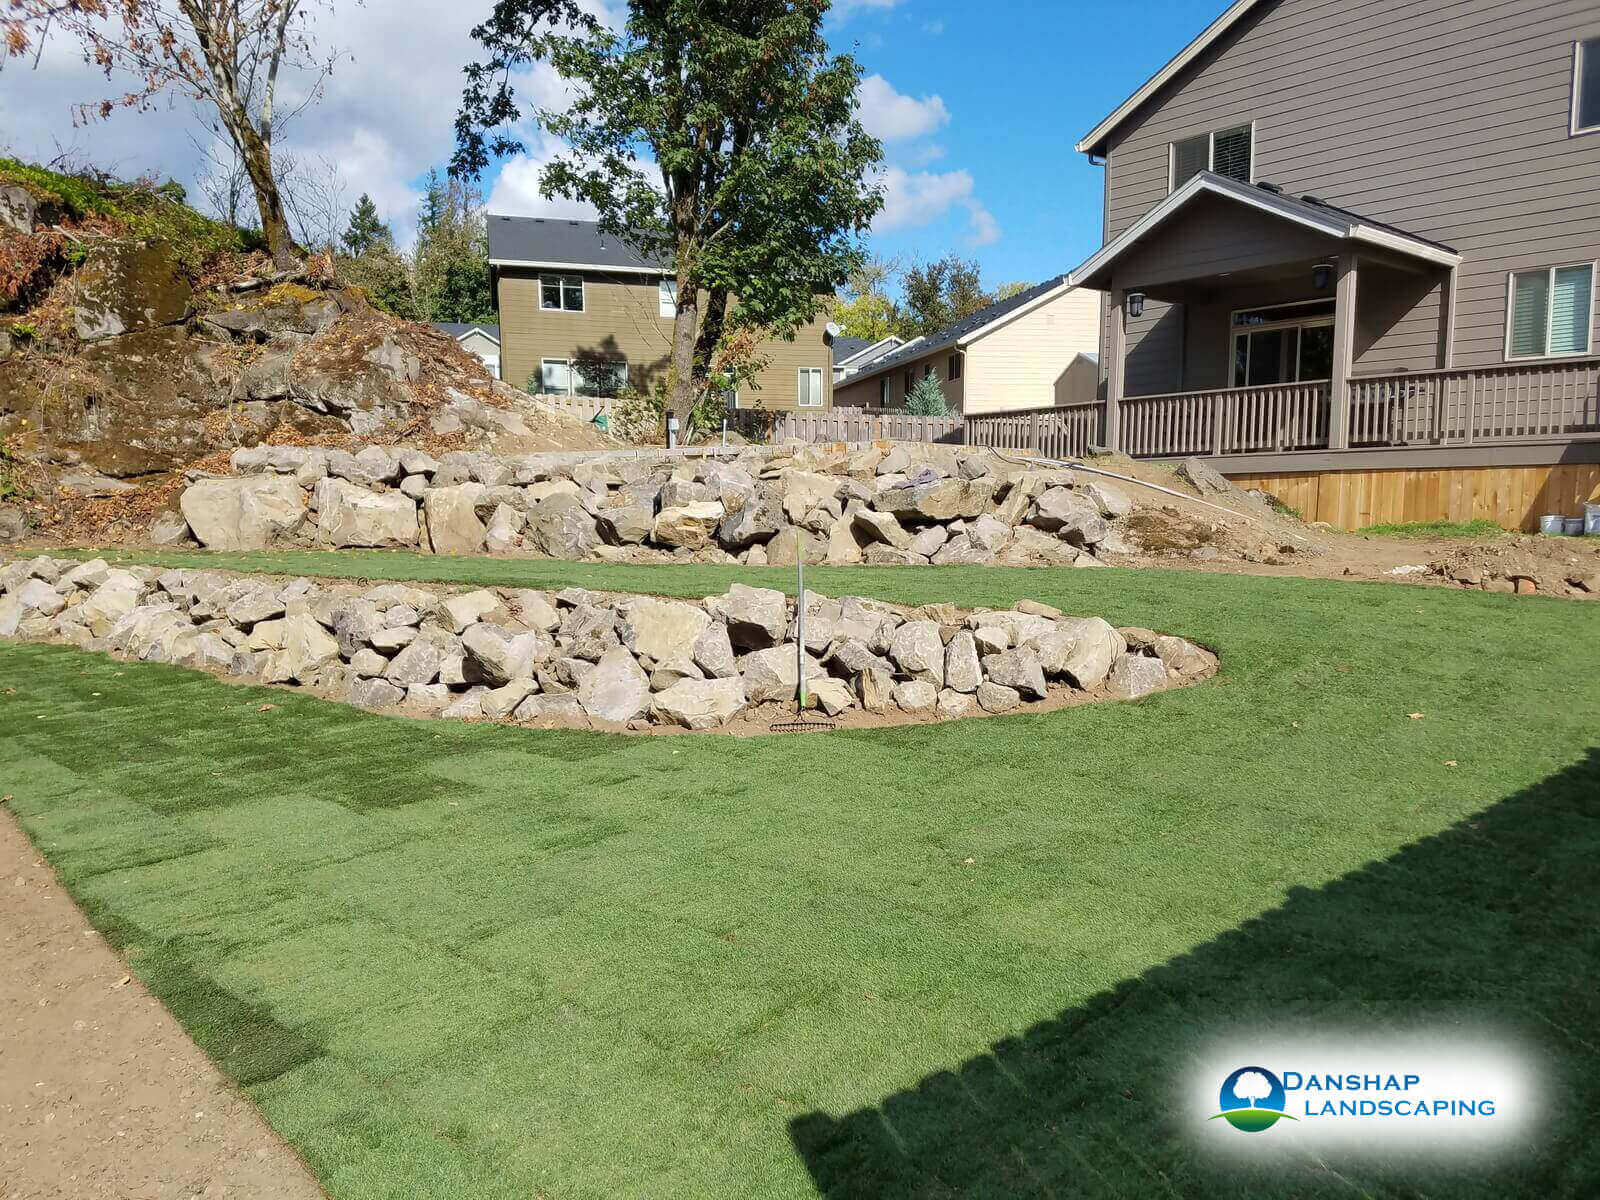 Sod-Replacement-Danshaplandscape-12